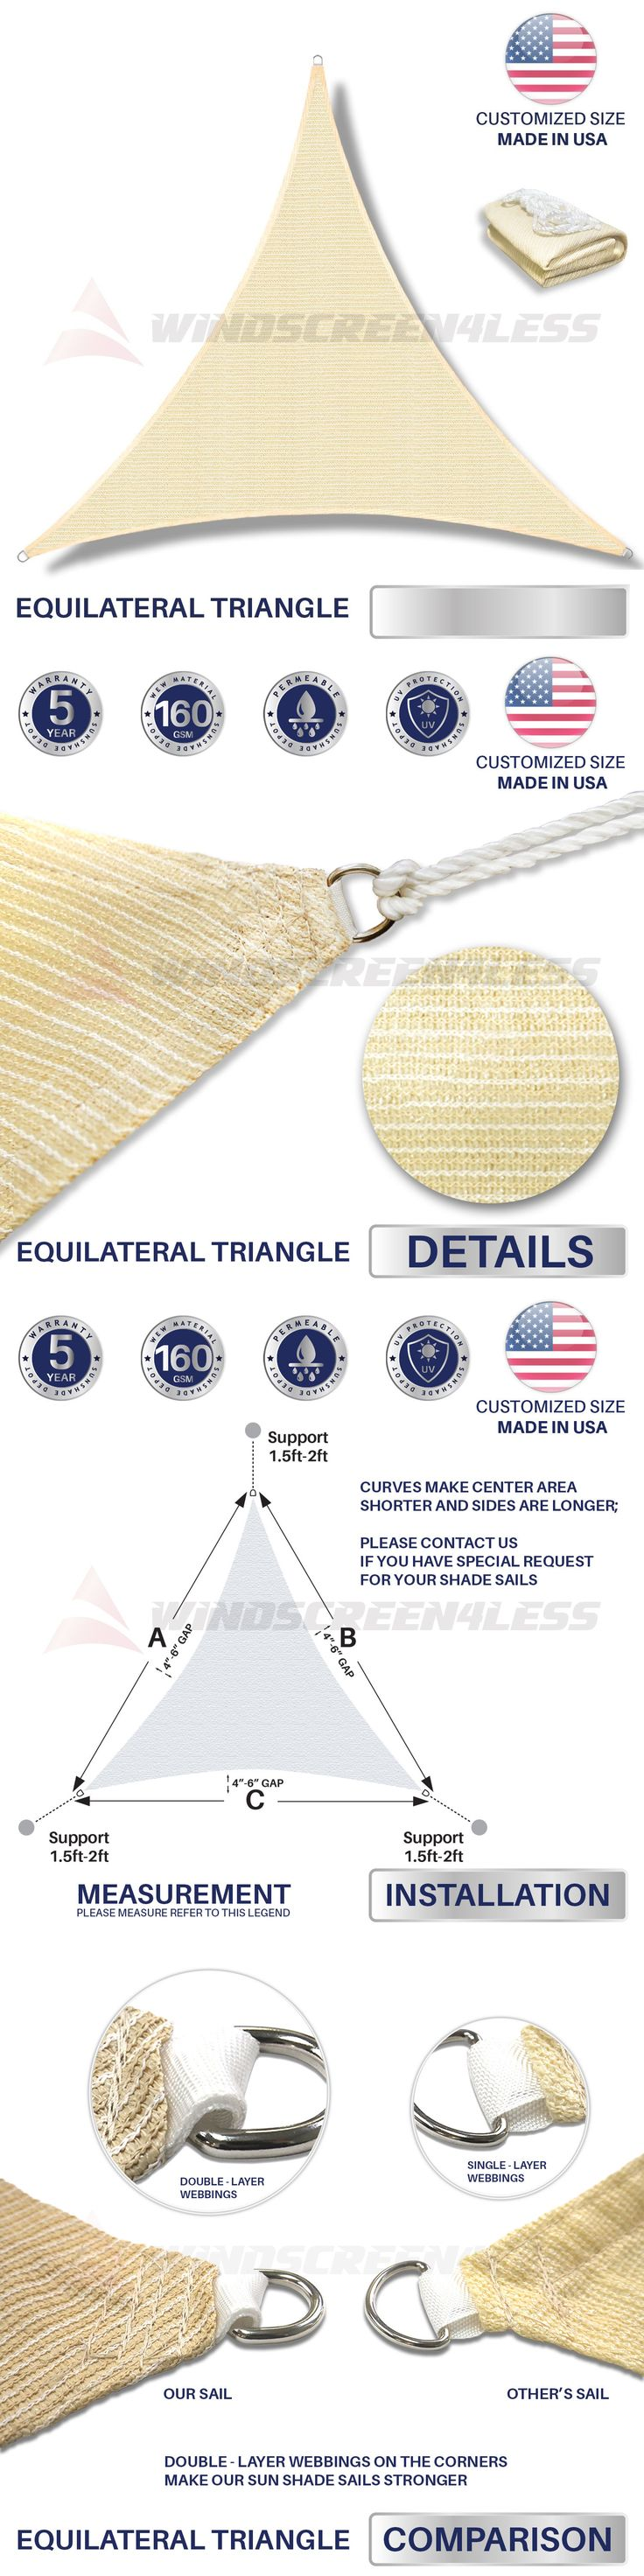 Shade Sails 180997: Custom Equilateral Triangle Beige Sun Shade Sail Canopy Awning Patio Pool Cover -> BUY IT NOW ONLY: $206.79 on eBay!